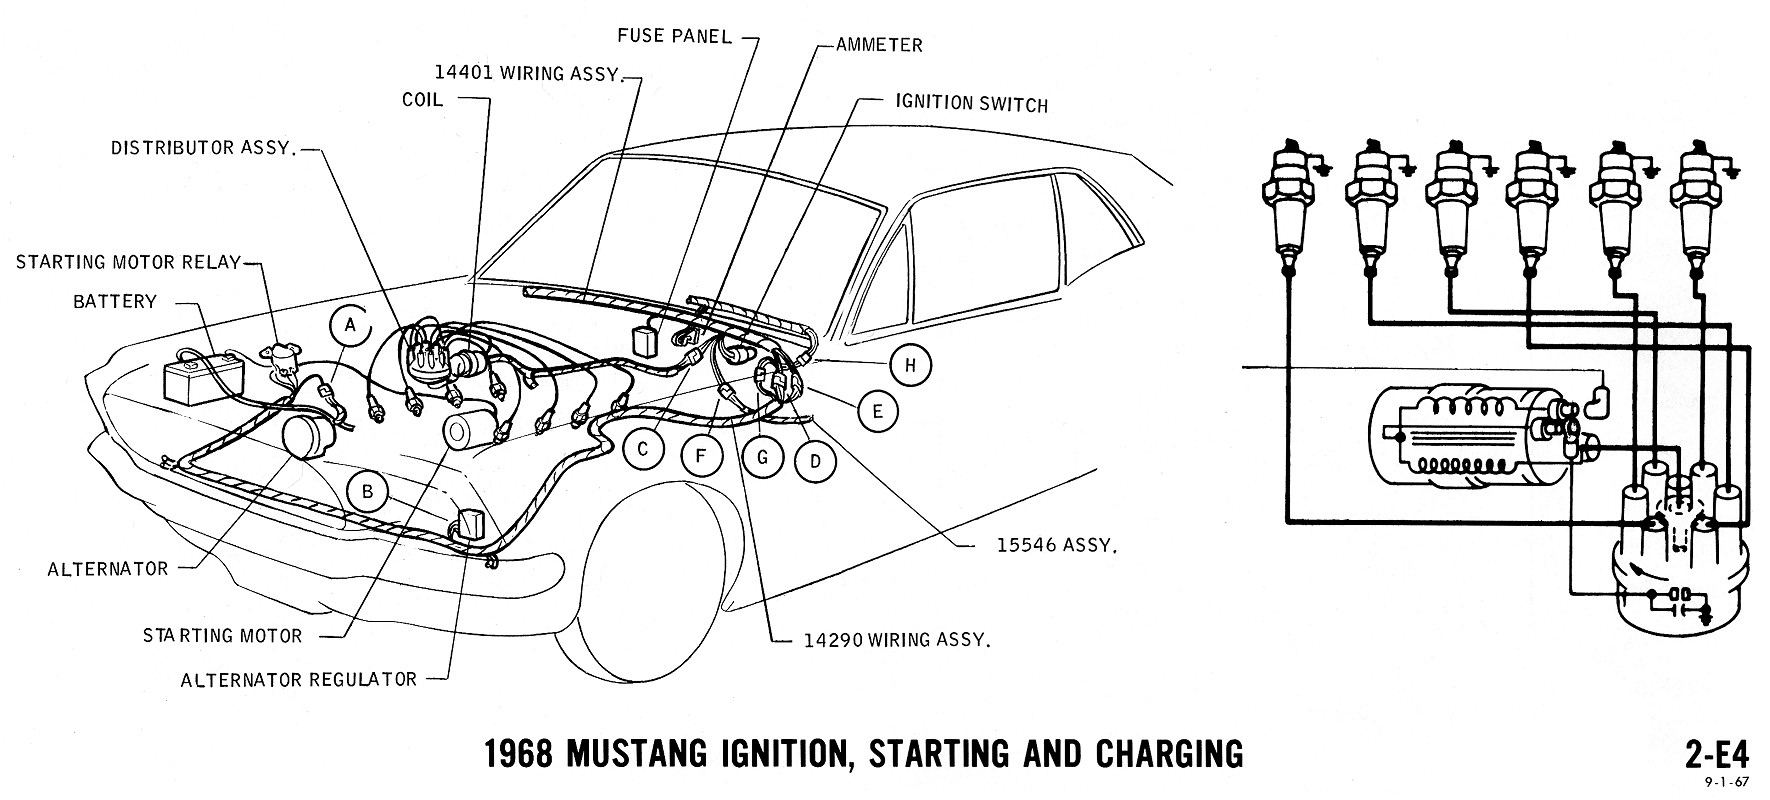 hight resolution of 1968 mustang wiring diagram for solenoid wiring diagram blogs 1971 chevelle wiring diagram free 1968 mustang